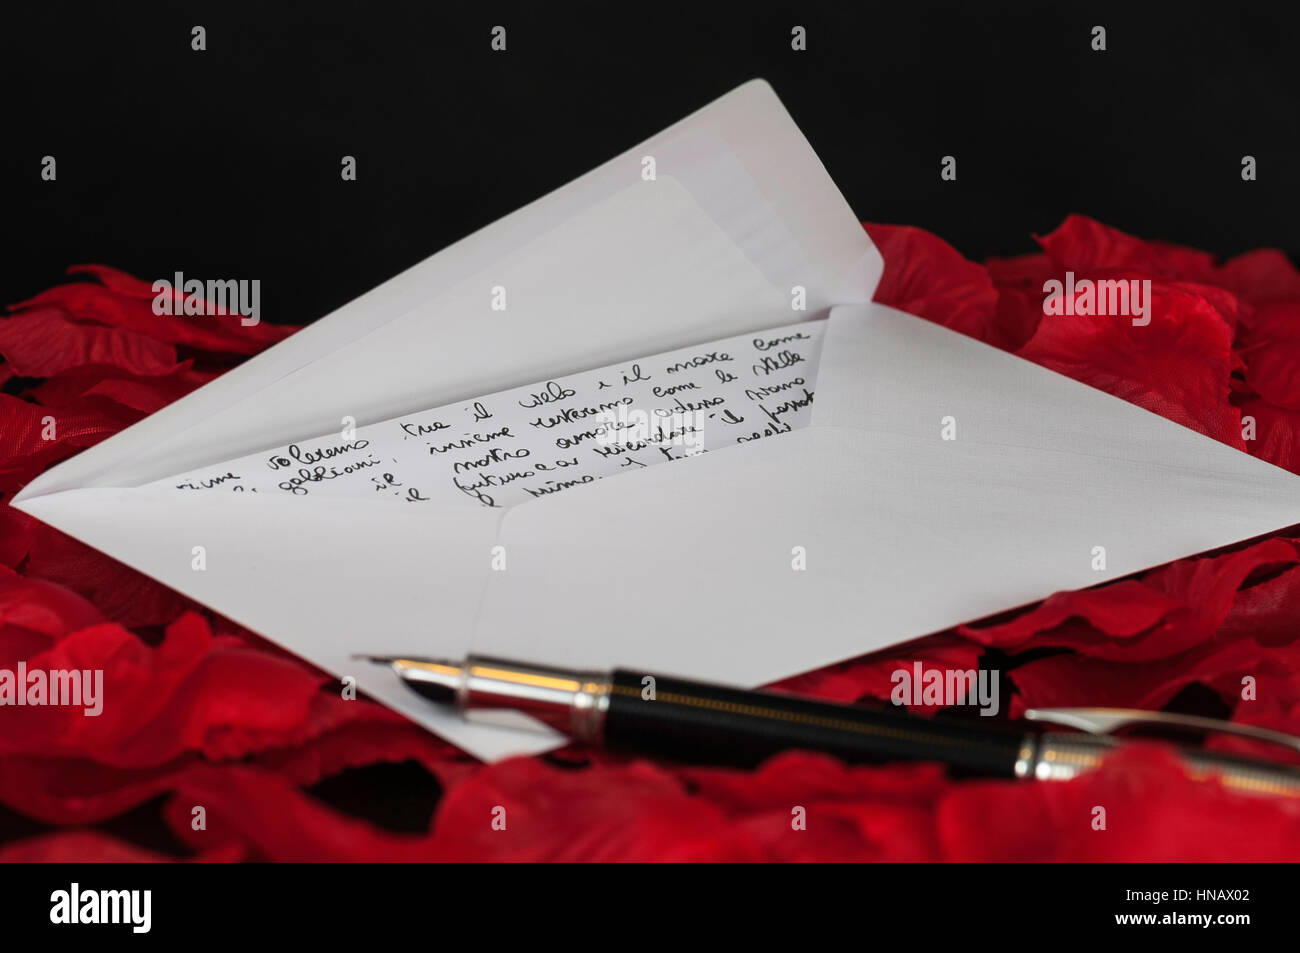 love letter on red rose petals and black background - Stock Image